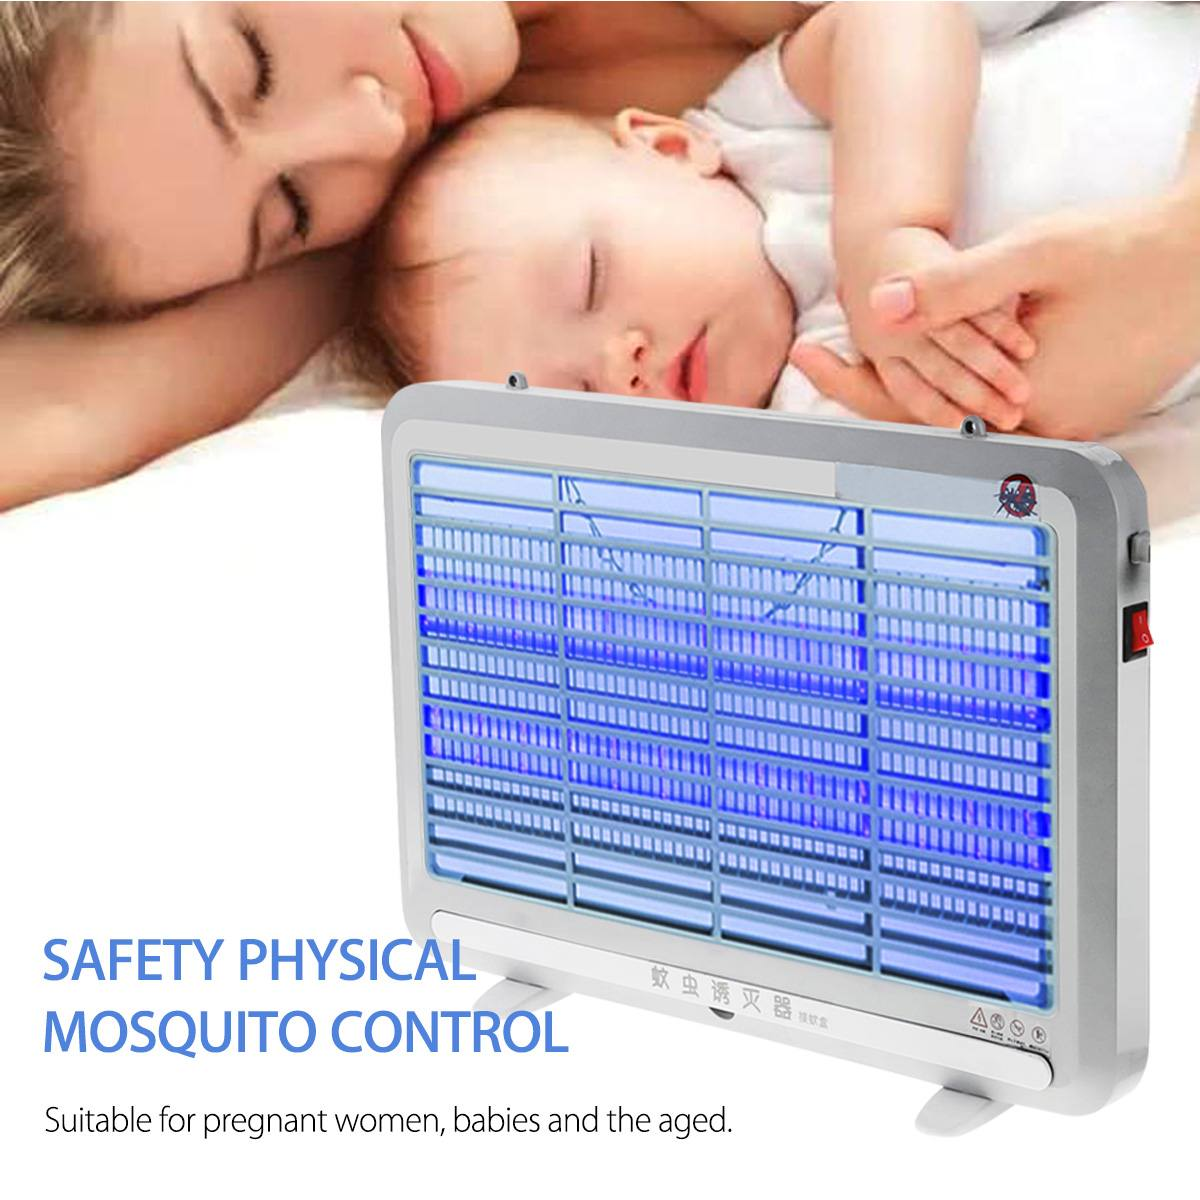 8W Electric Mosquito Killer Lamp LED UV-A Pest Fly Insect Anti Mosquito Repeller LED Lamp Home Pest Control Light Fixture